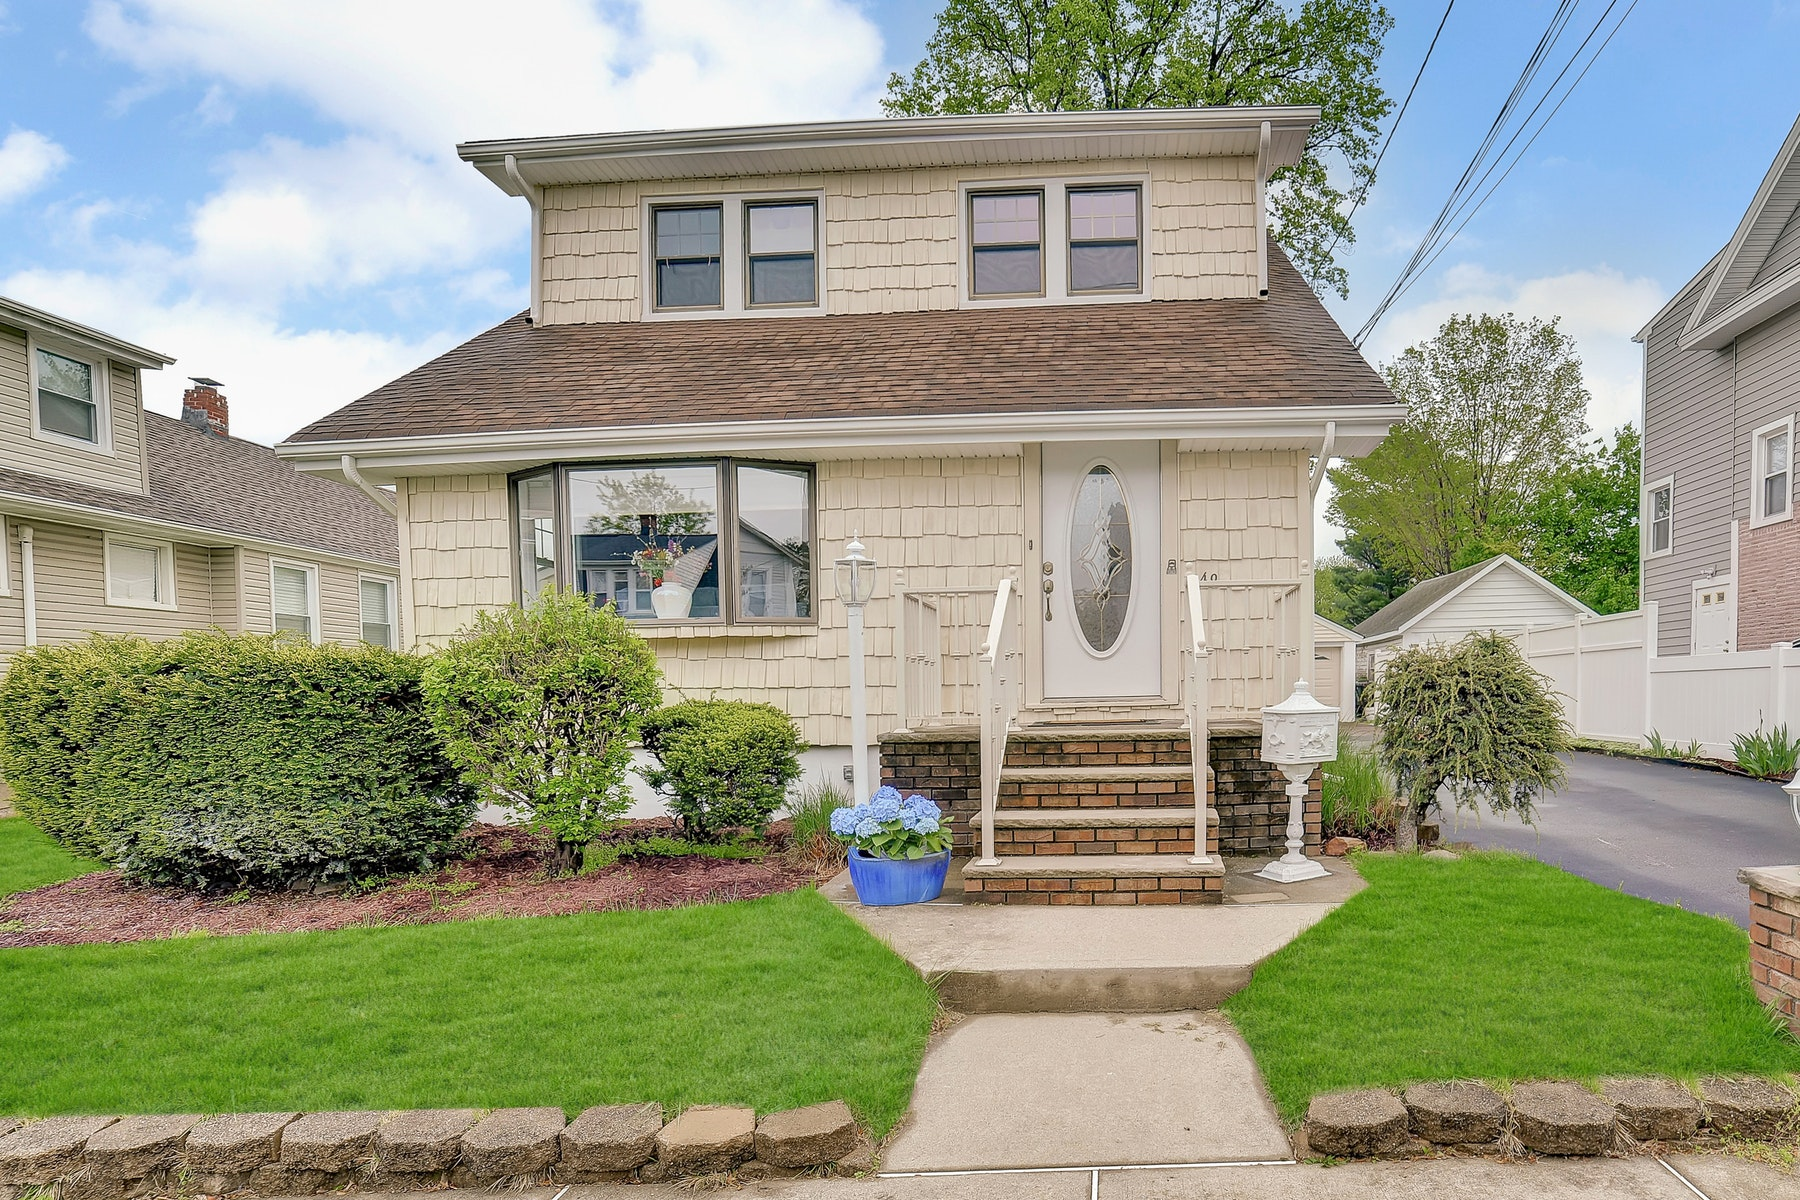 Single Family Home for Sale at Charming Renovated Colonial 49 Orange Ave, Elmwood Park, New Jersey 07407 United States